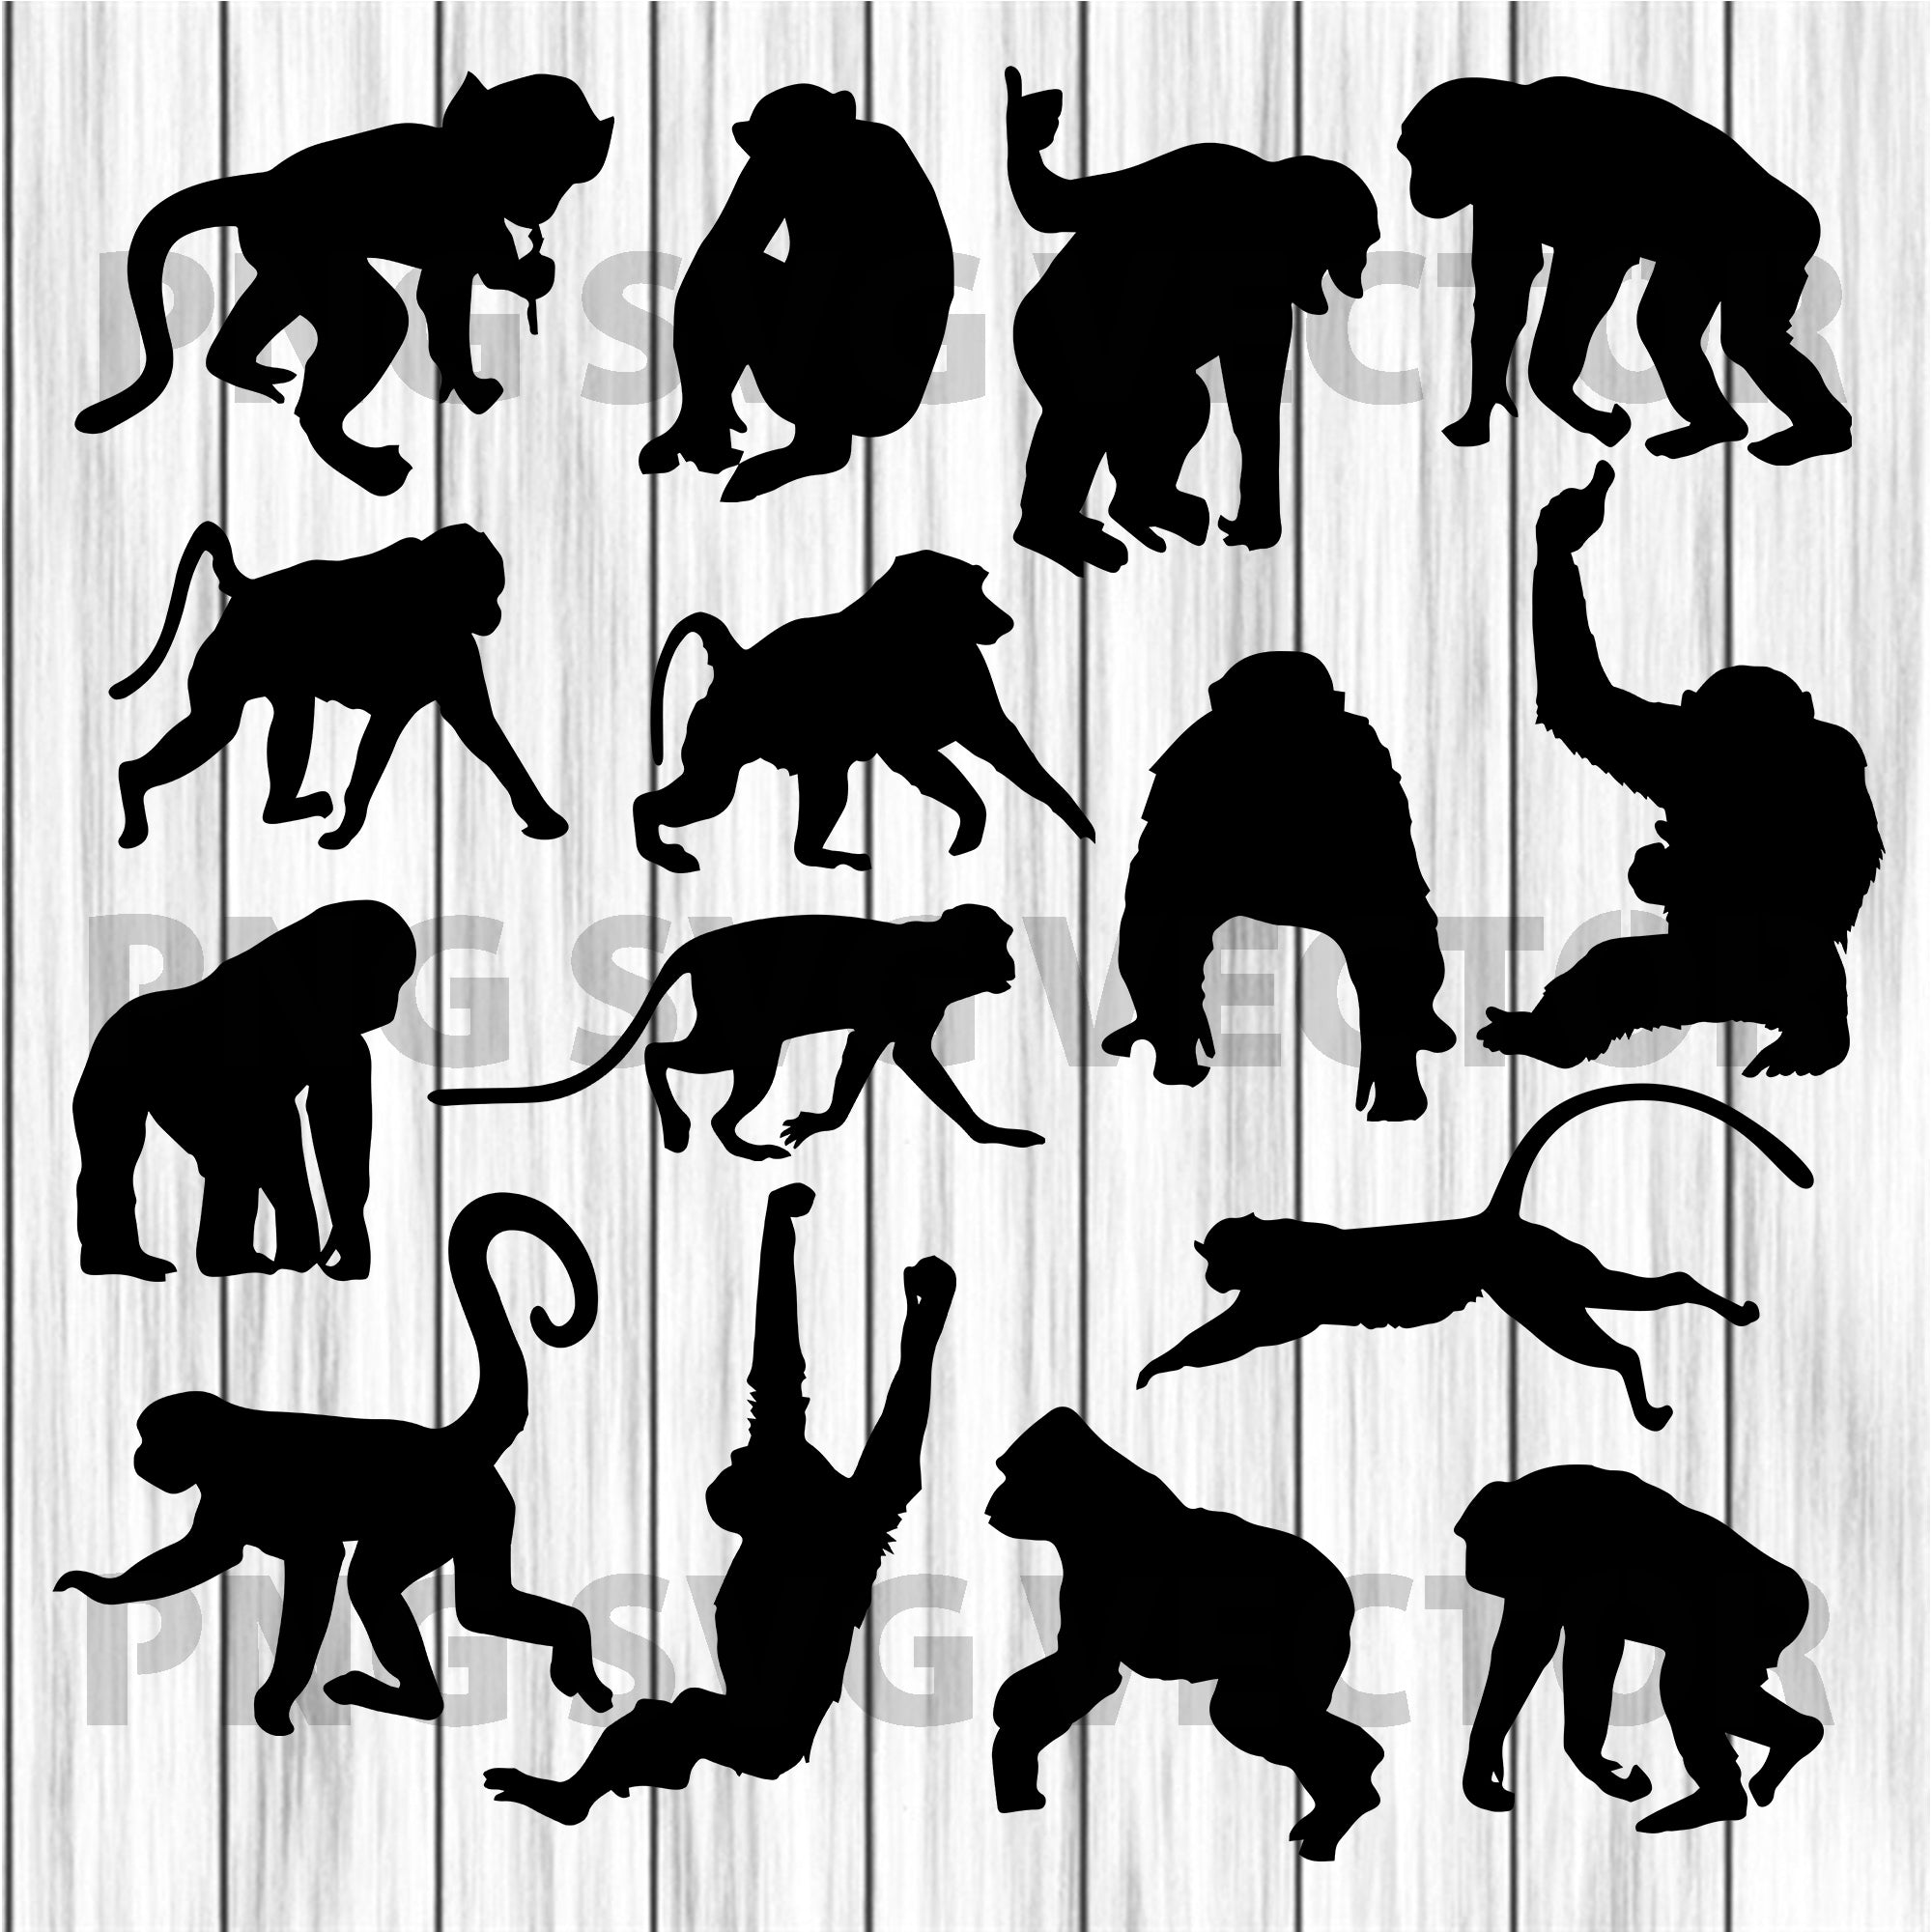 Monkey Svg Bundle, Monkey Svg, Monkey Vector, Monkey Clipart, Monkey Cutting Files For Cricut, SVG, DXF, EPS, PNG Instant Download